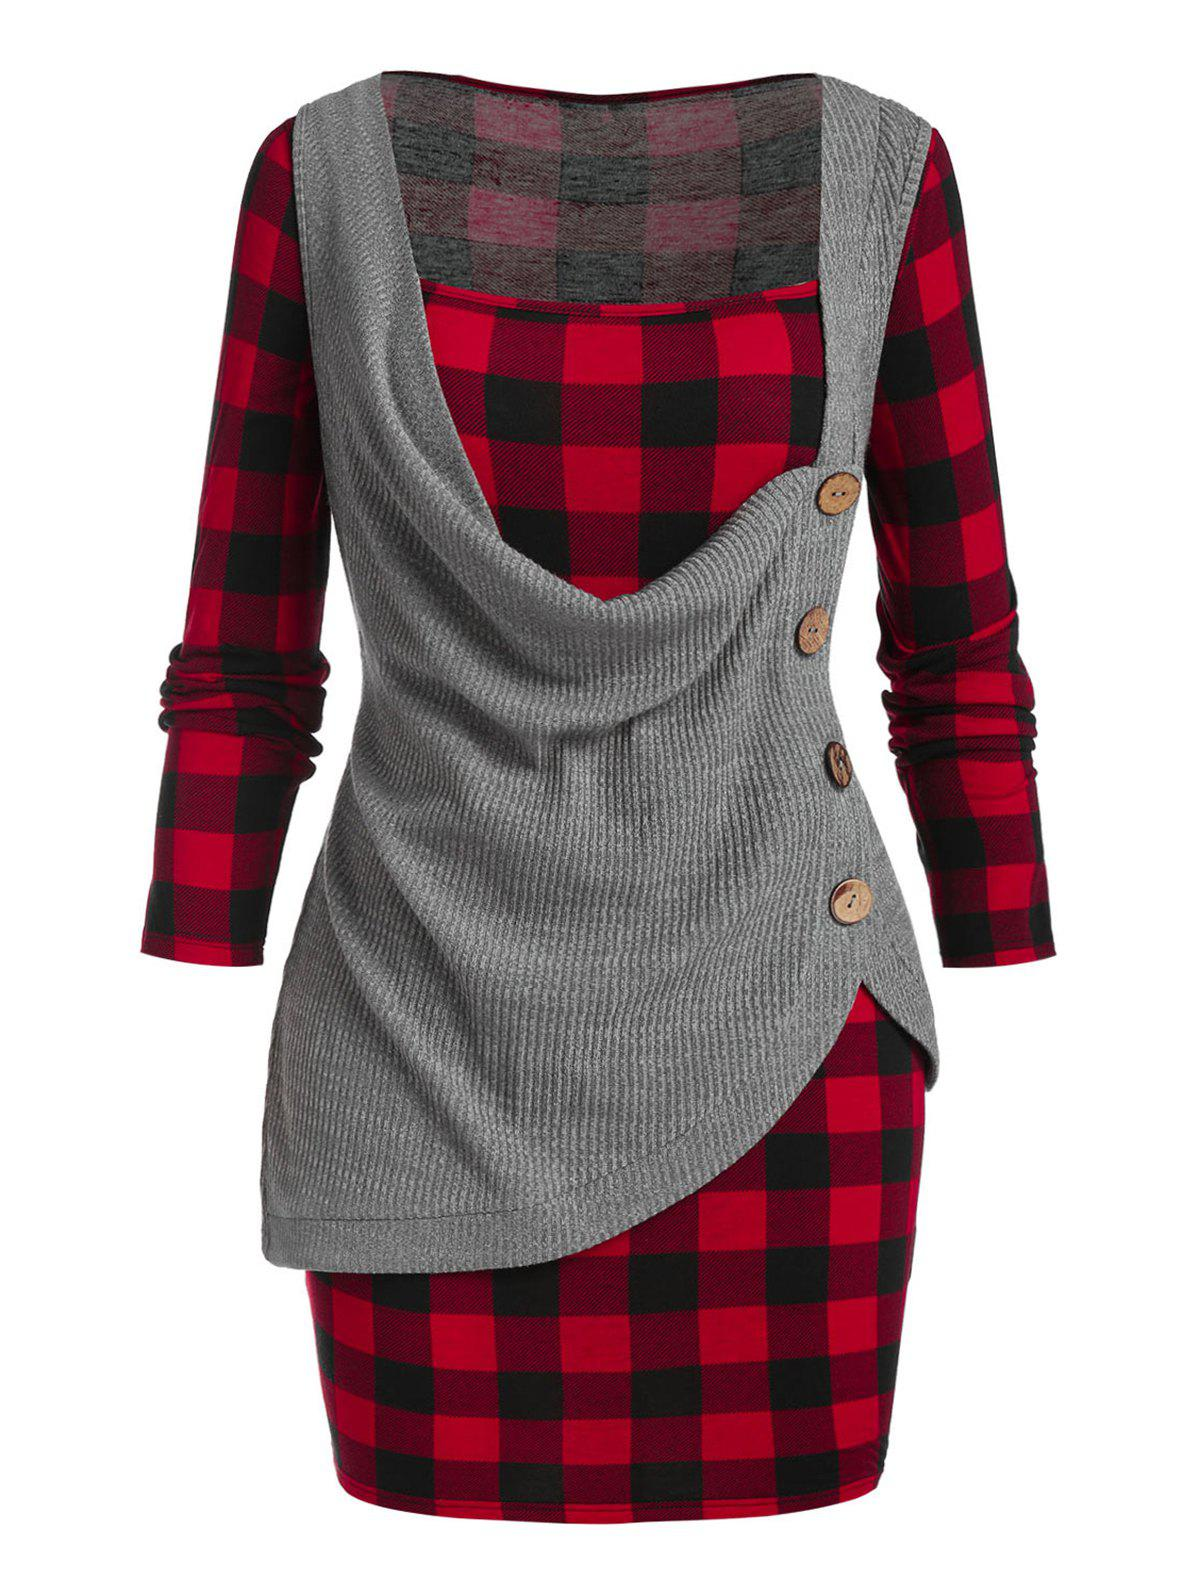 Plus Size Cowl Front Knitwear and Plaid Dress Set - RED WINE 4X